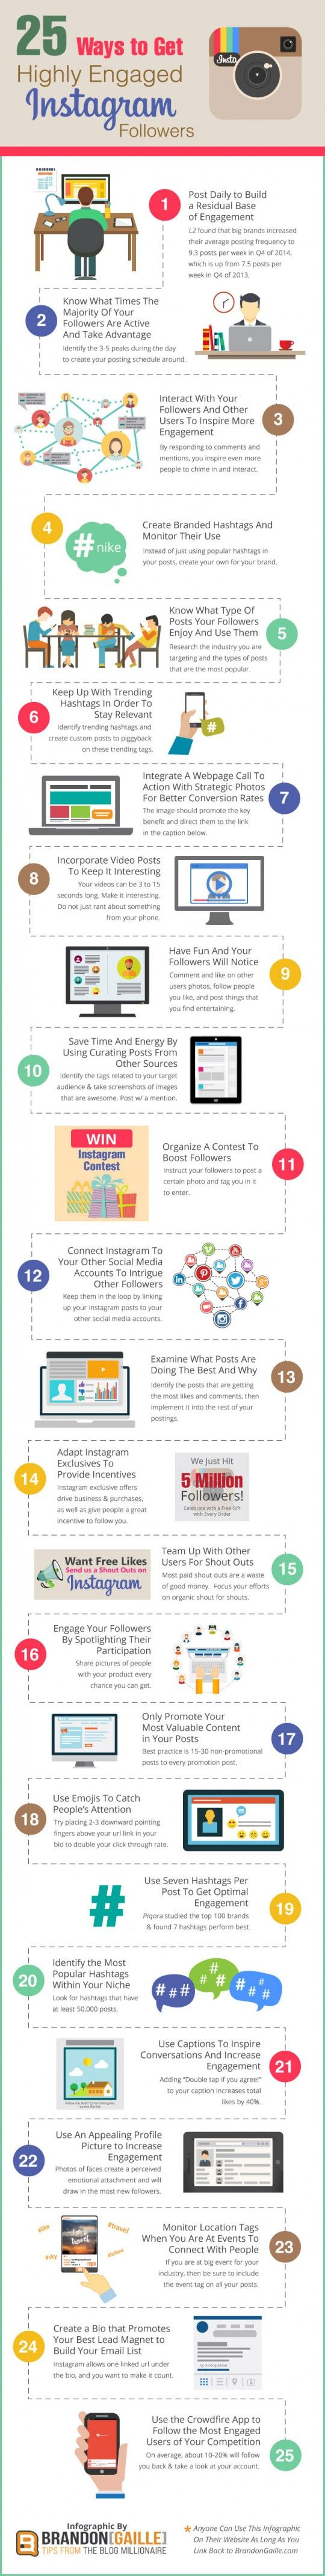 25 Top Instagram Marketing Tips from the Pros